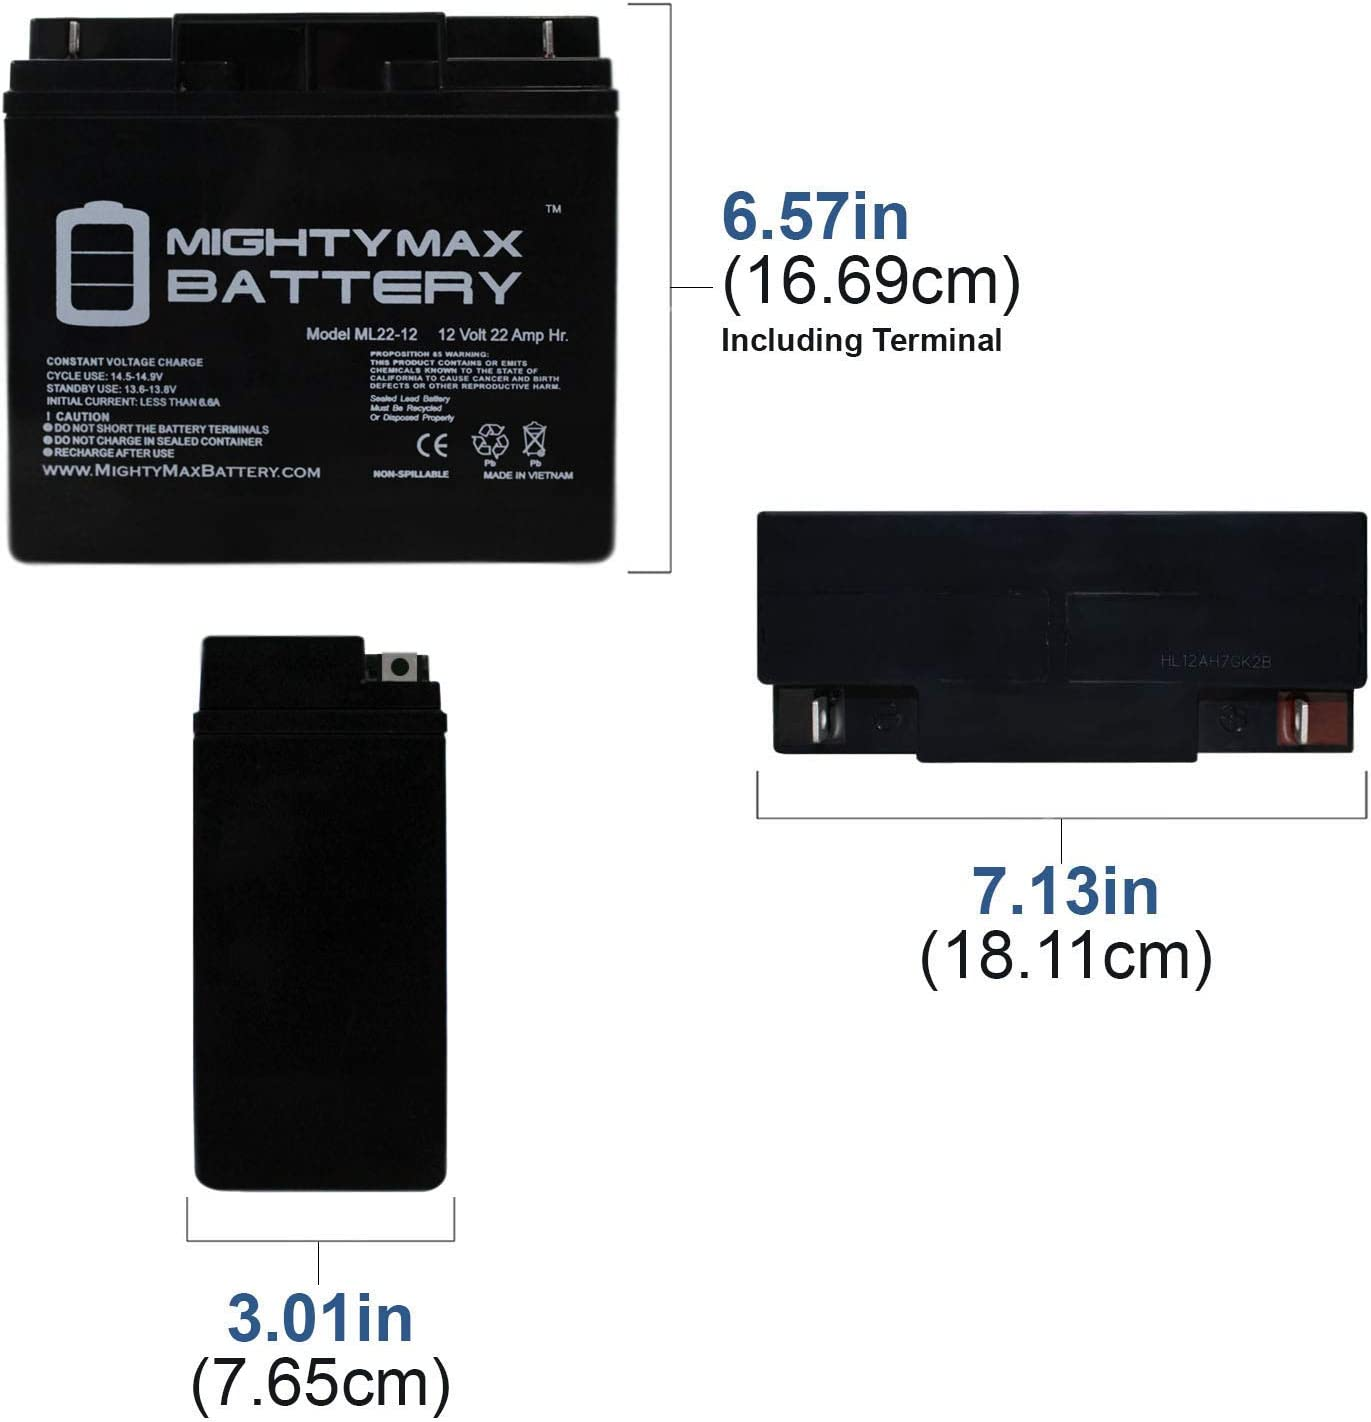 Mighty Max Battery 12V 22AH SLA Battery for Black Decker Electromate 400 Brand Product